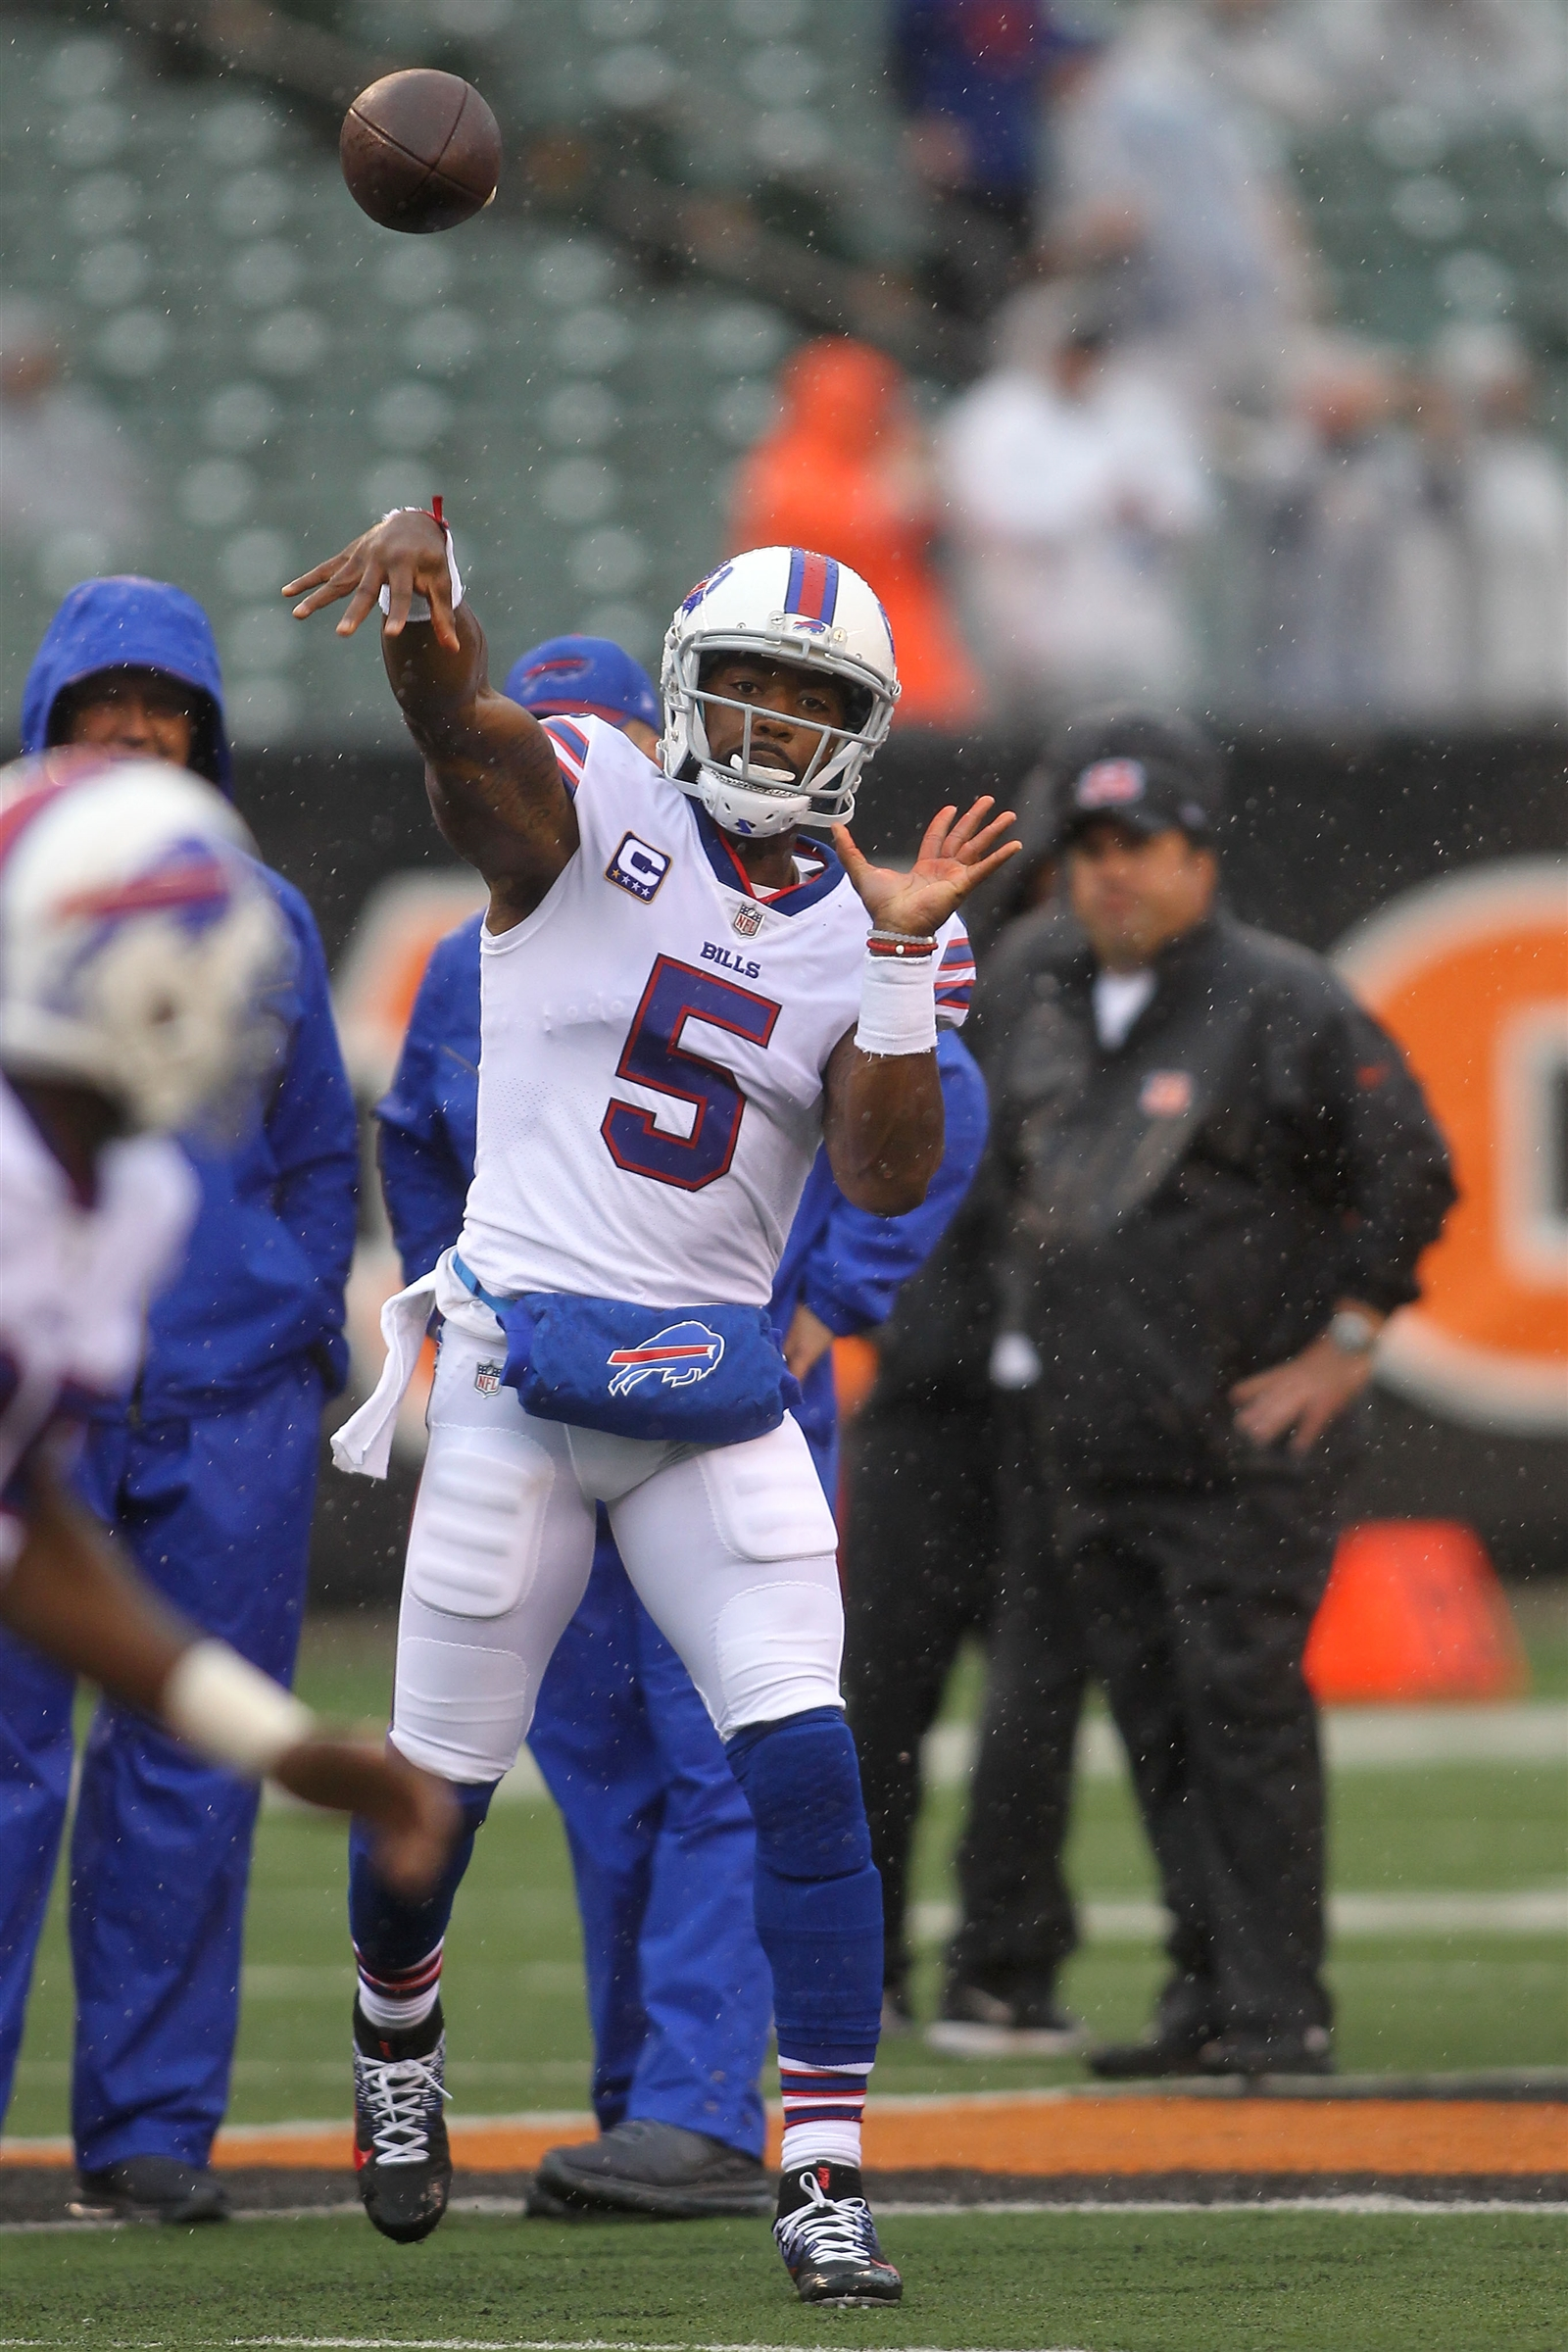 Bills quarterback Tyrod Taylor warms up prior to the start of the game against the Cincinnati Bengals at Paul Brown Stadium on Sunday, Oct. 8, 2017 in Cincinnati.